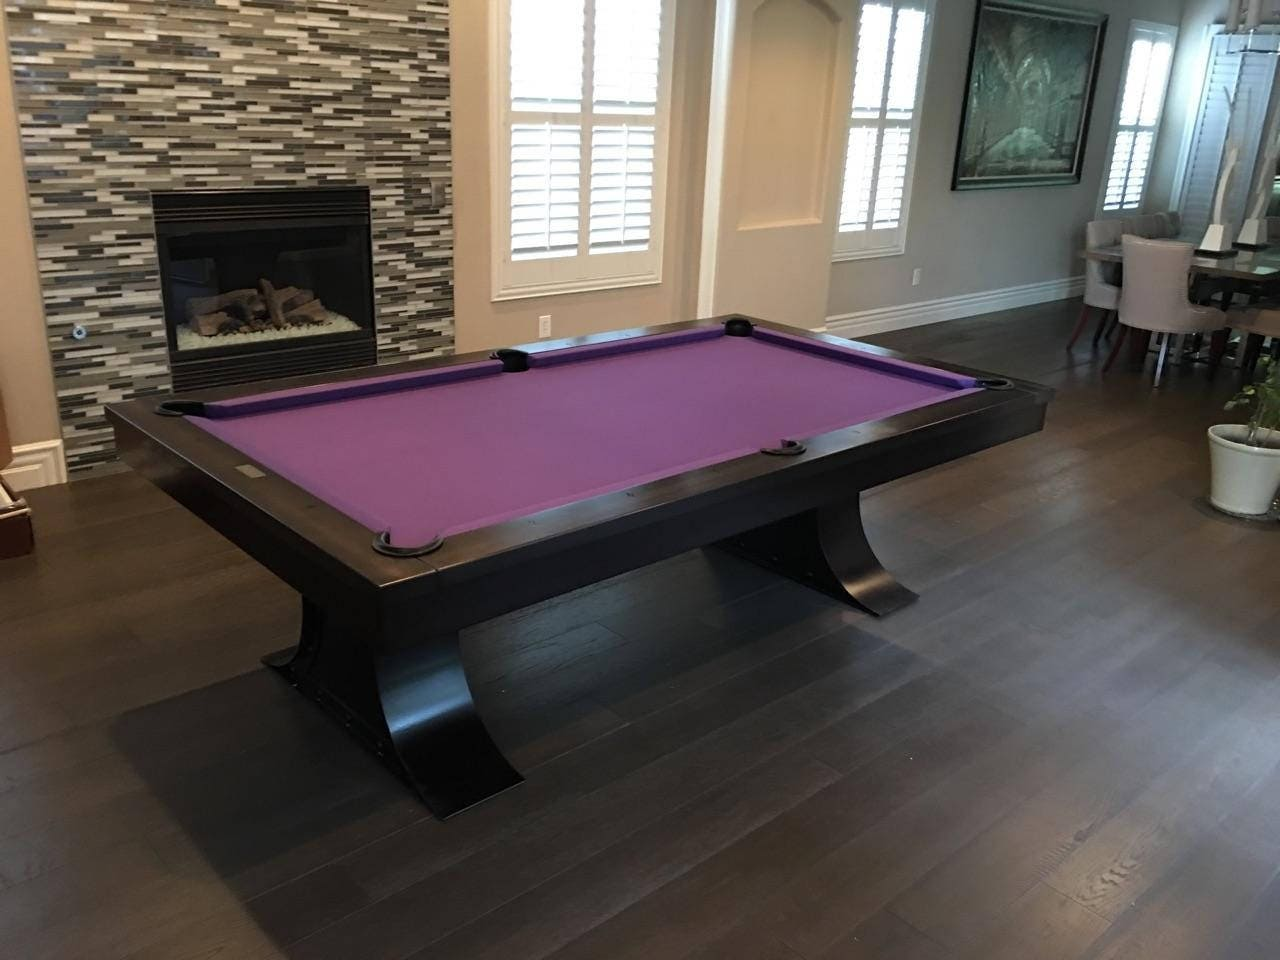 Xane Steel Pool TableIndustrial FurnitureRestoration Hardware - Restoration hardware pool table